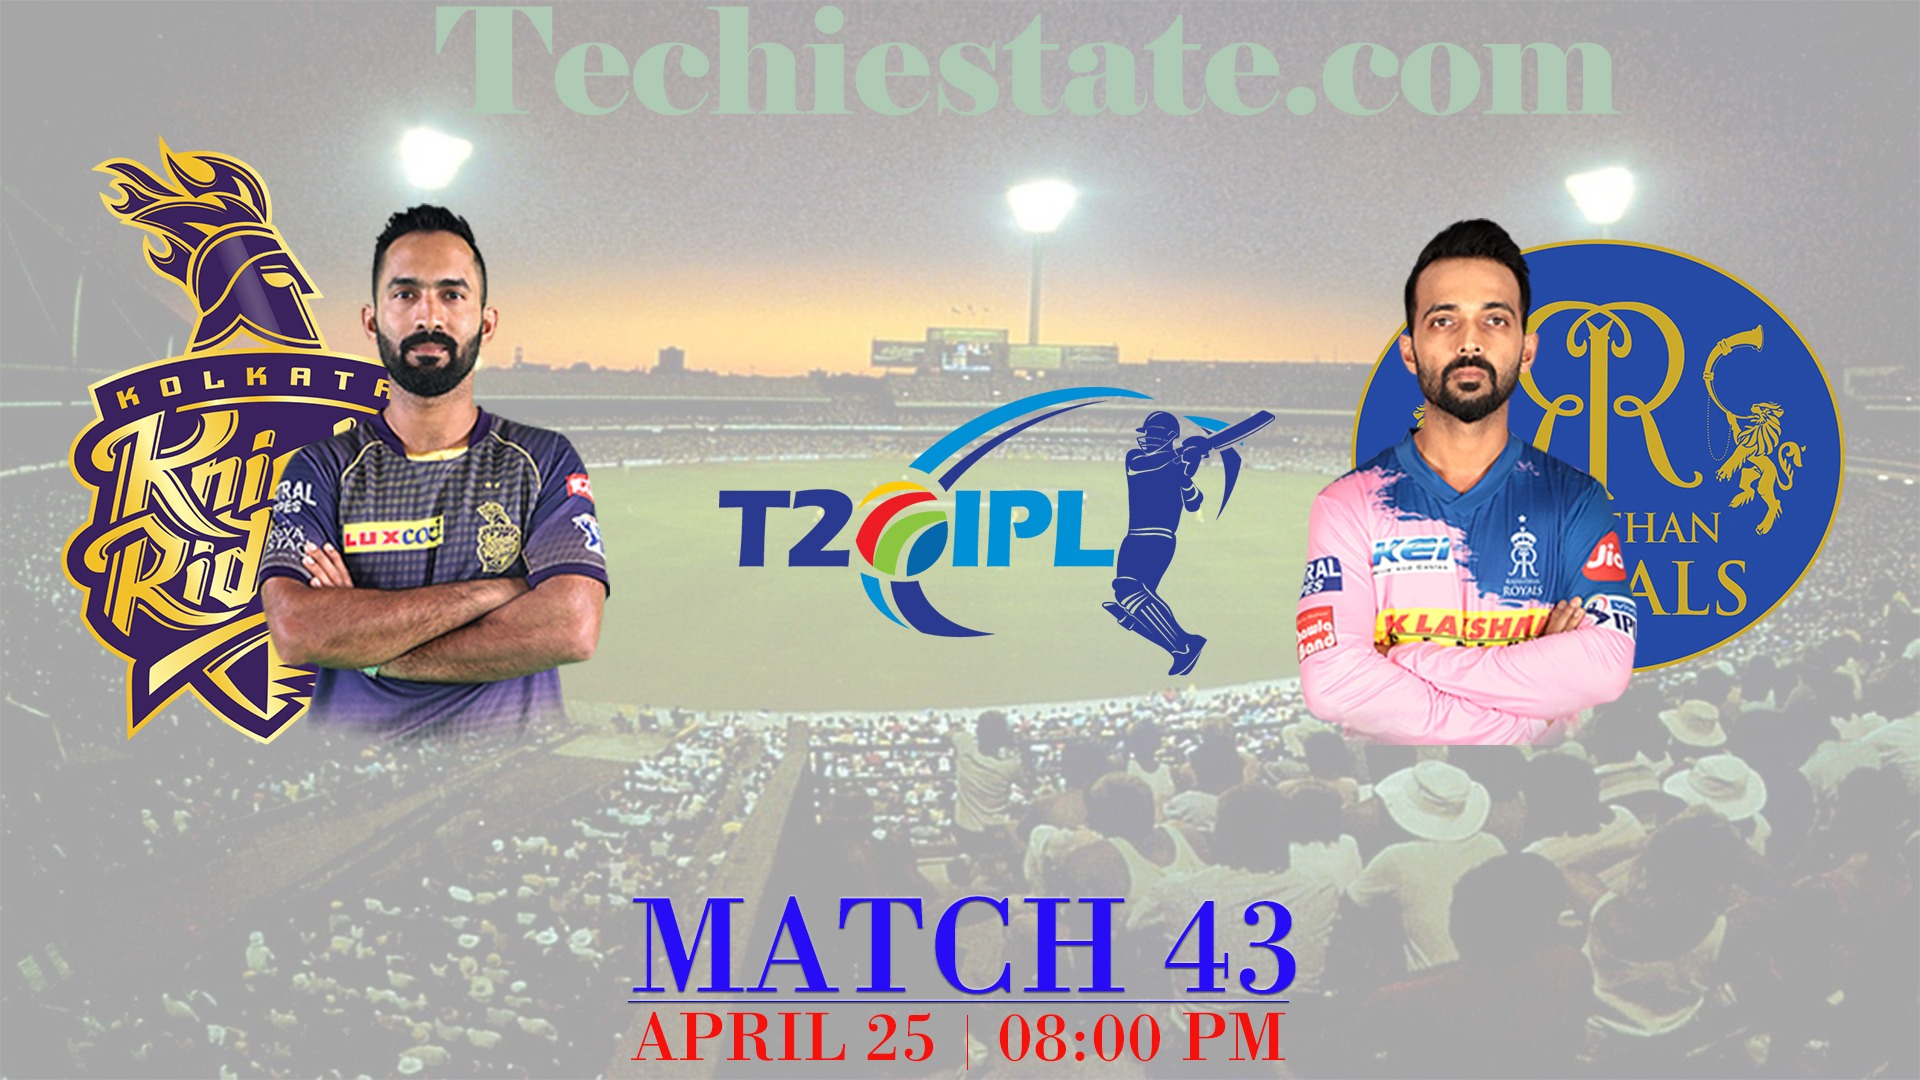 KKR Vs RR 43rd Match Prediction, Live Streaming Score Updates